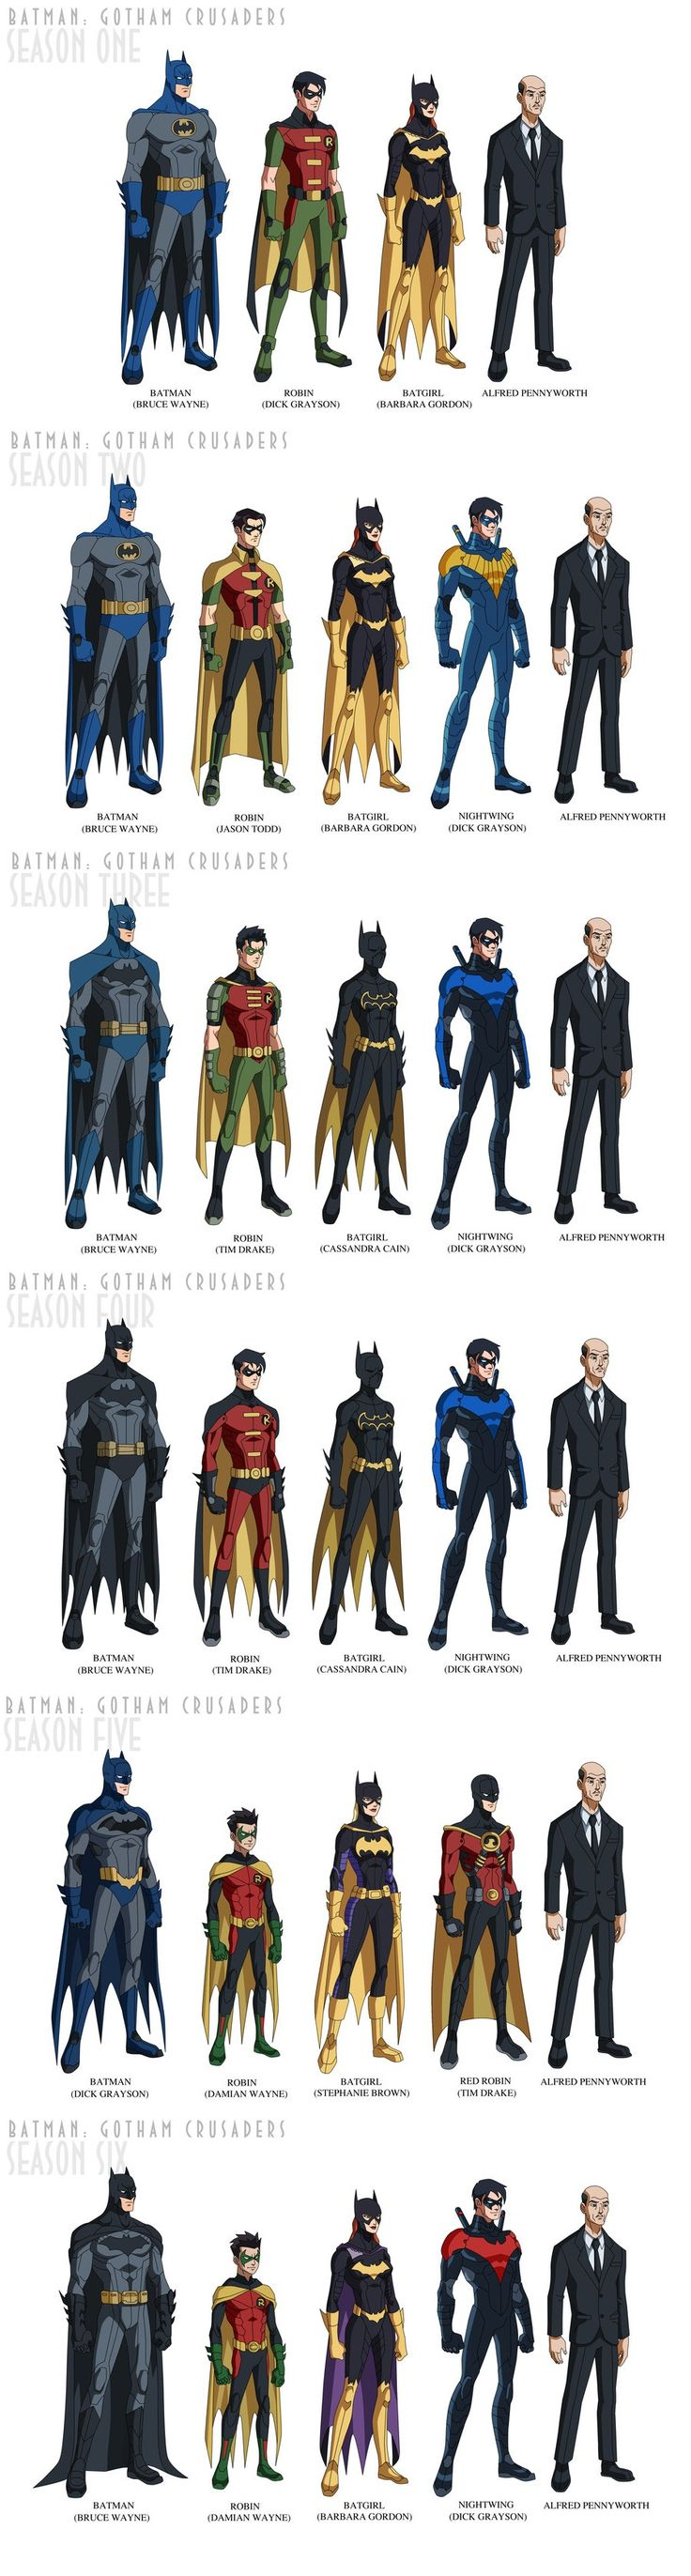 Gotham Crusaders--- Alfred literally doesn't change.--I had to stop buying comic books when I got engaged to save every penny that I could. How is Barbara Gordon Batgirl again when she was paralyzed from being shot by the Joker (in The Killing Joke) for so many years! What?!